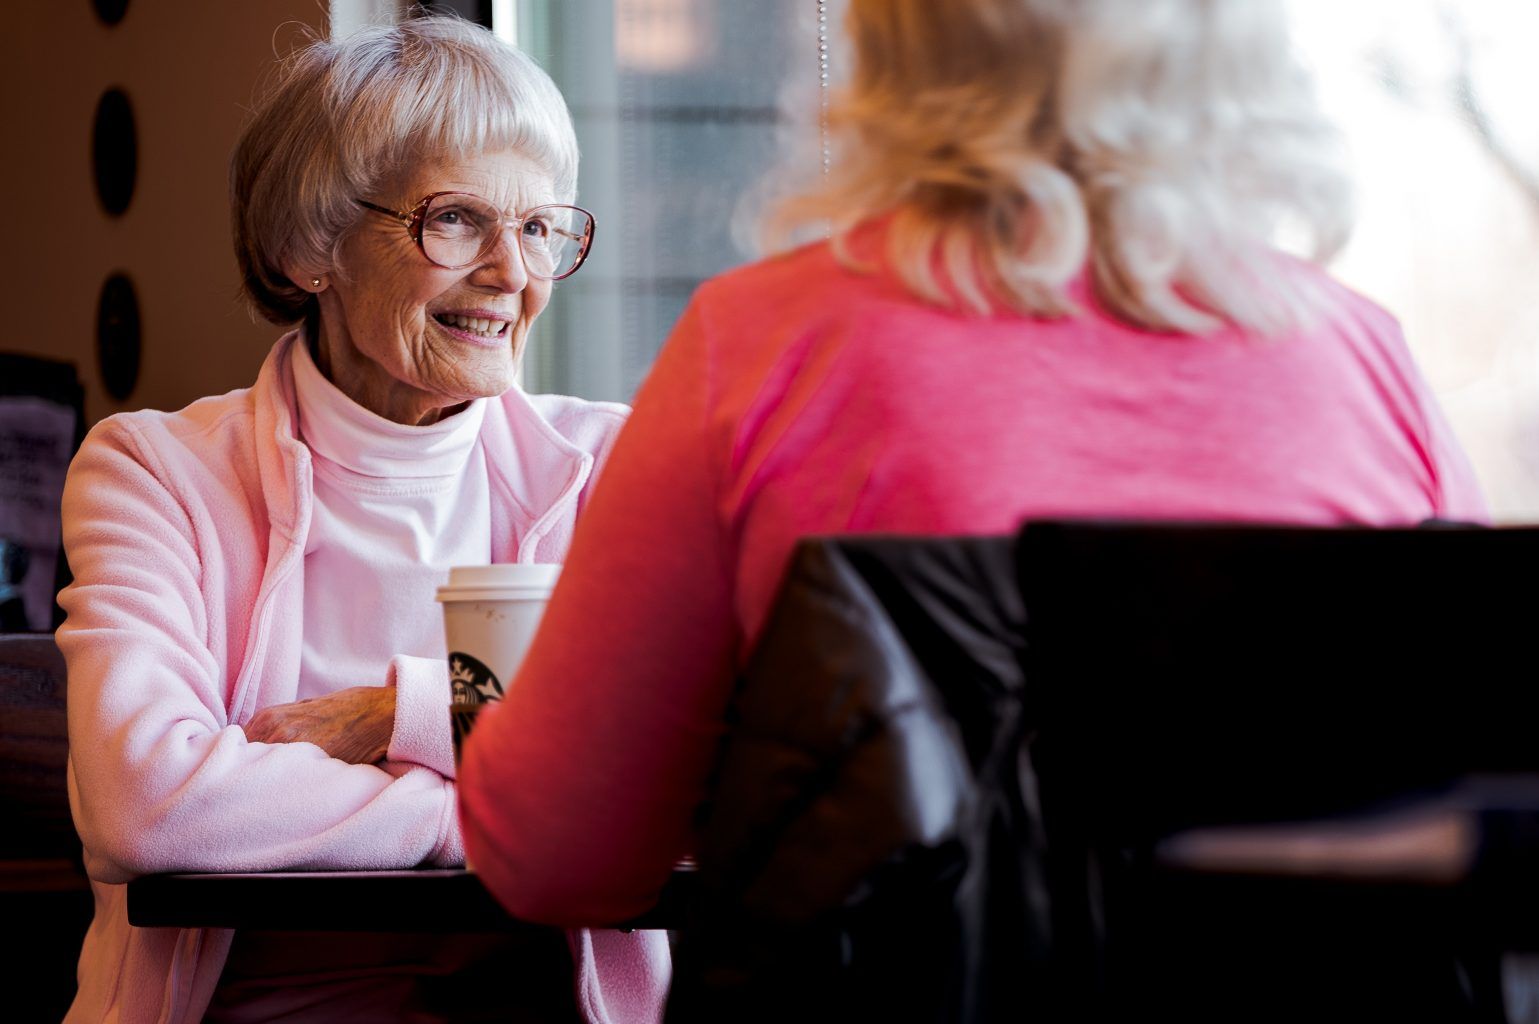 tips to be more social in retirement - how to make friends in retirement - ocean gardens Perth